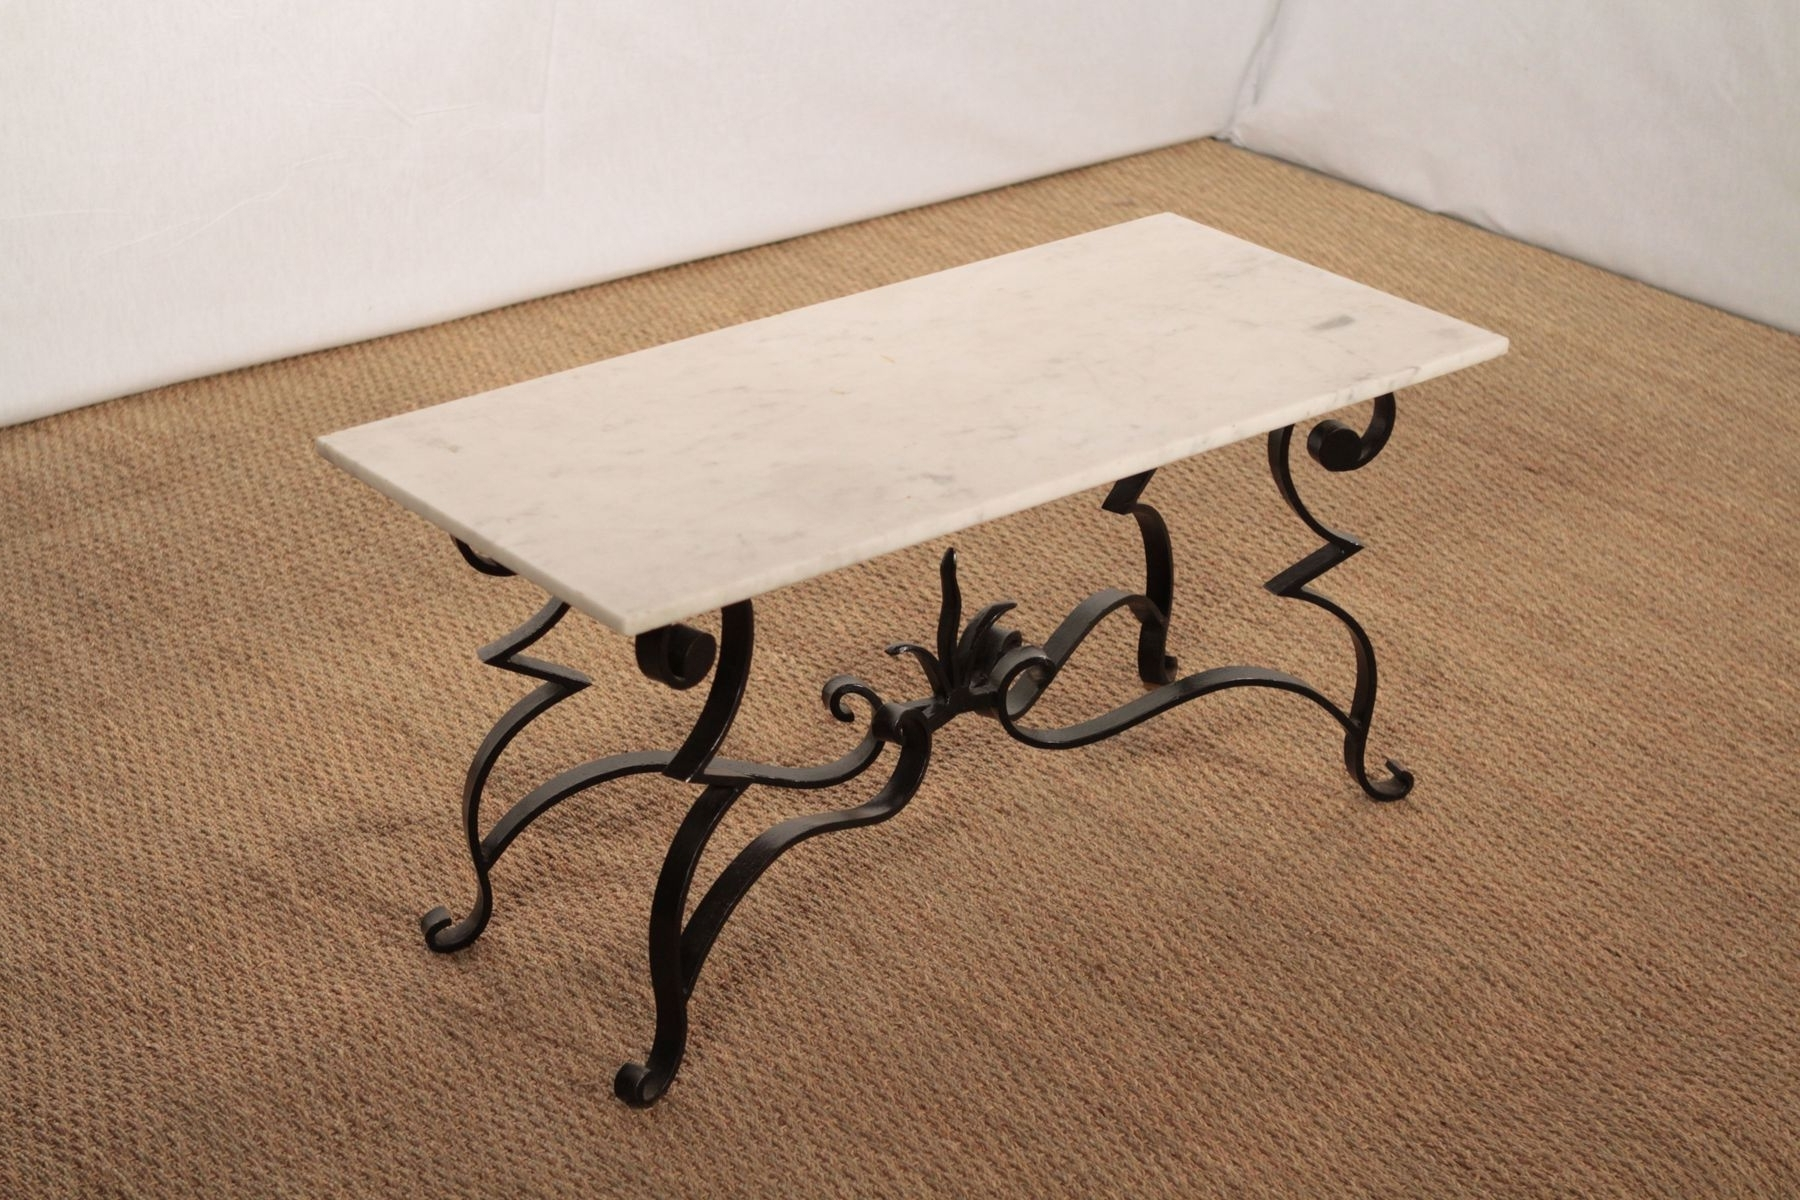 2018 Iron Marble Coffee Tables With Wrought Iron And Marble Coffee Table For Sale At Pamono (View 7 of 20)